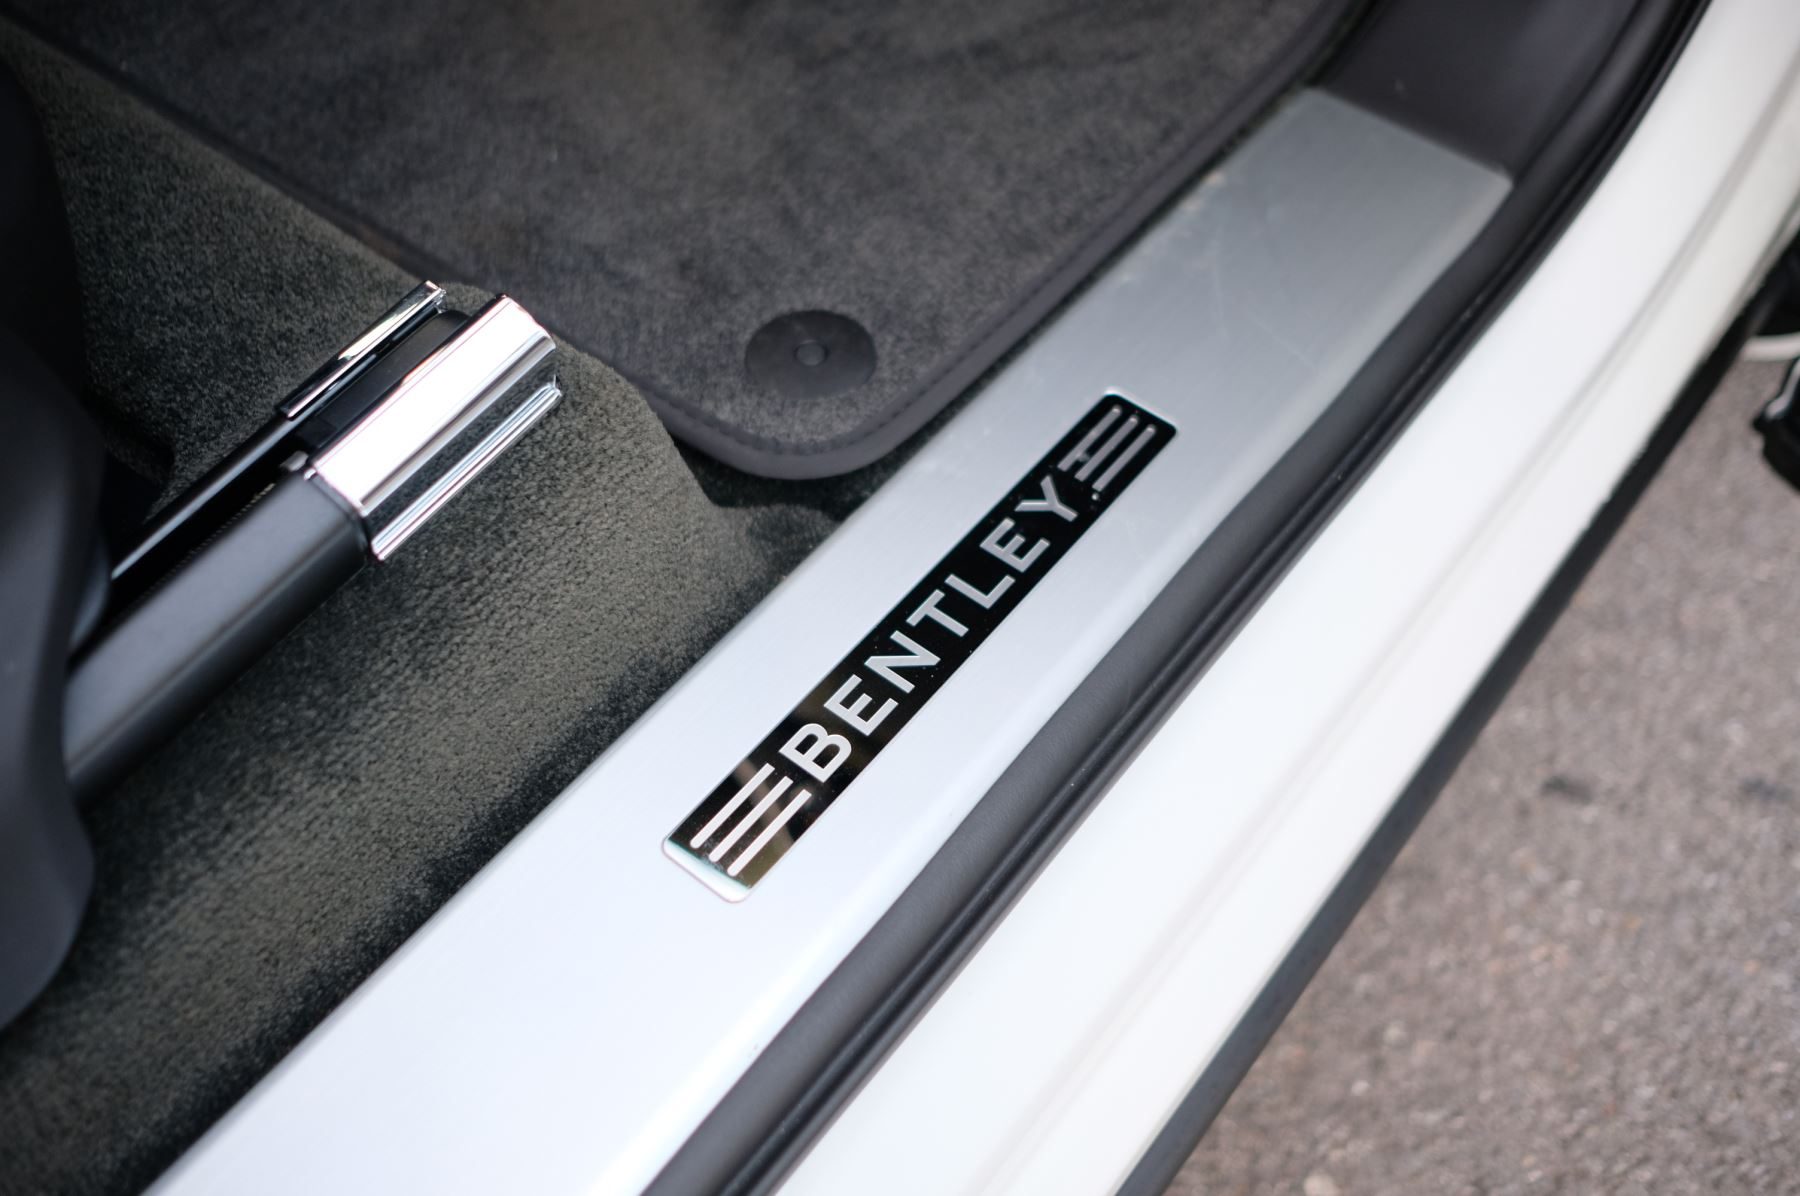 Bentley Bentayga 4.0 V8 - Touring and Front Seat Comfort Specification  image 19